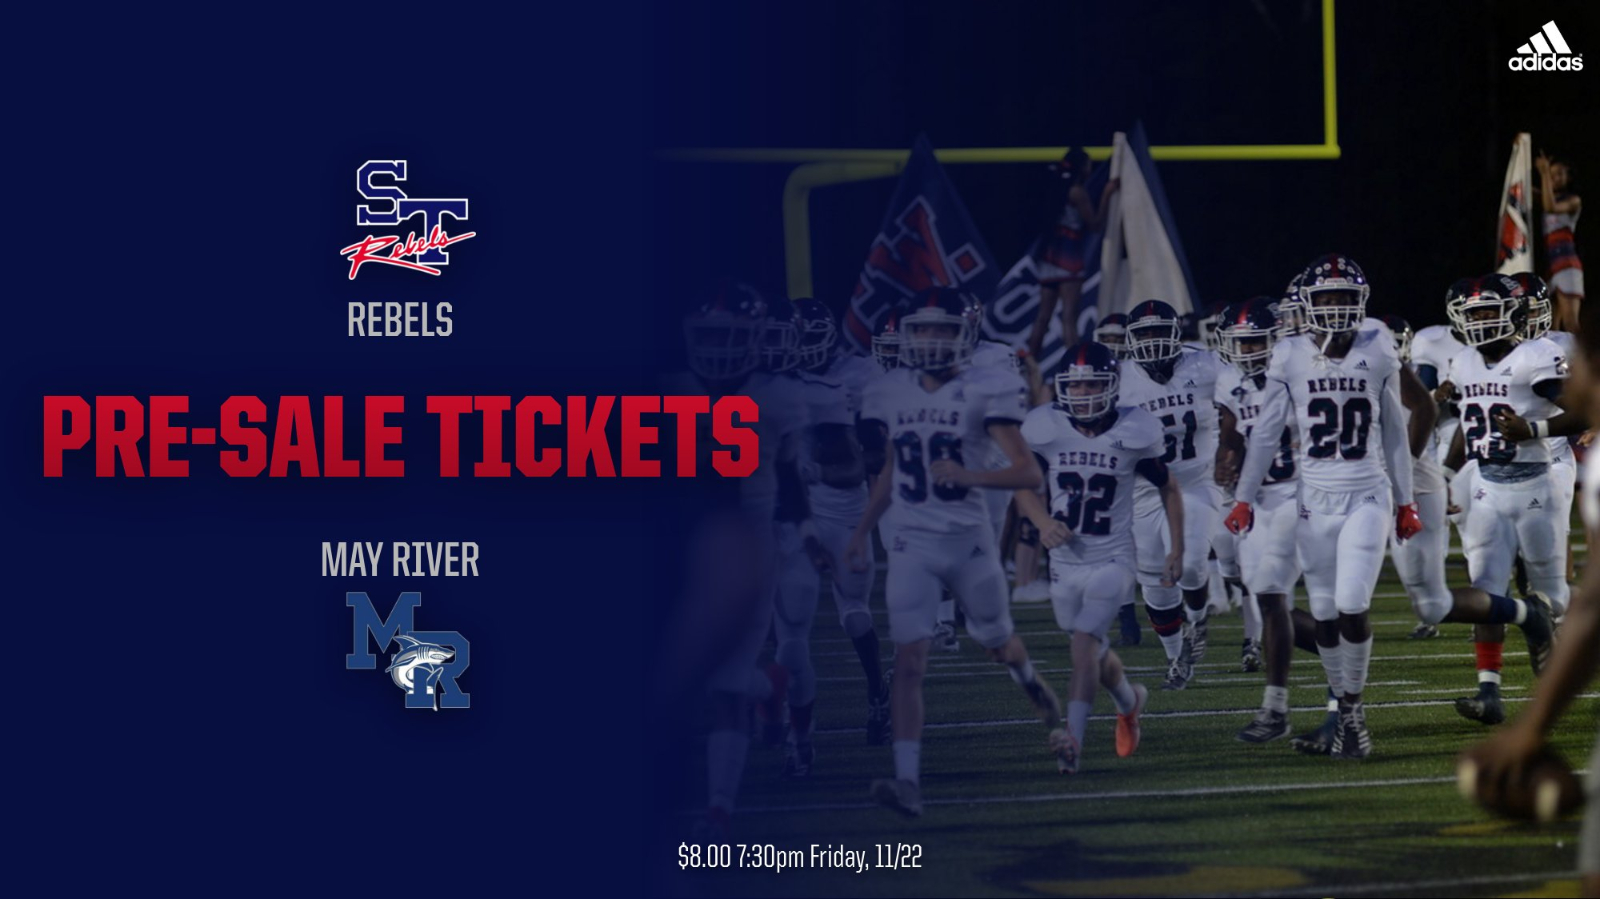 STHS vs May River 3rd Round AAA Playoff Tickets On Sale Now